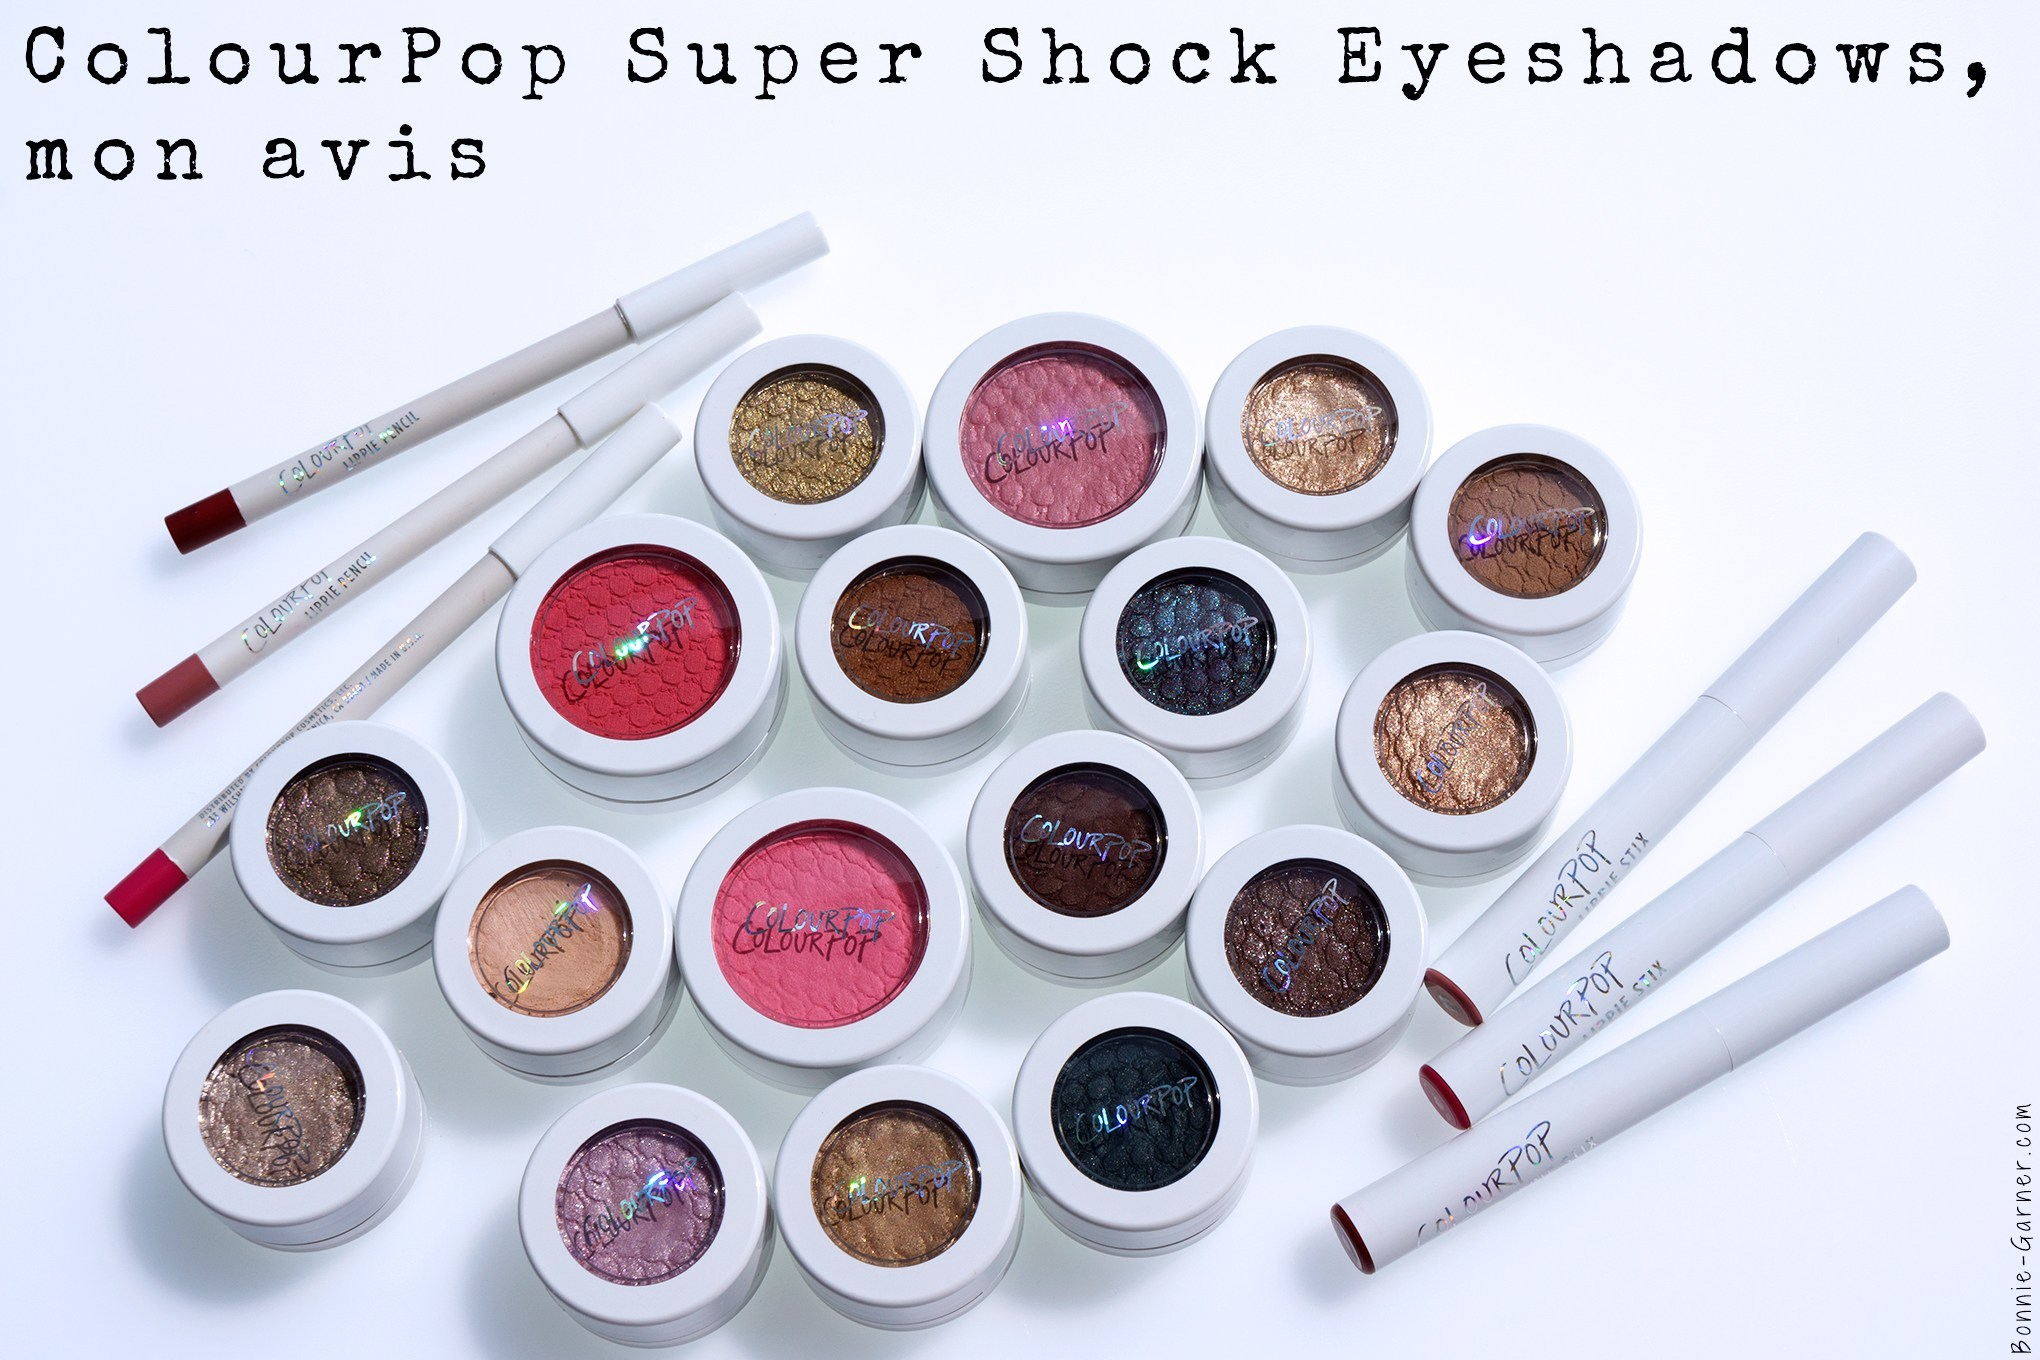 ColourPop Super Shock Eyeshadows, mon avis